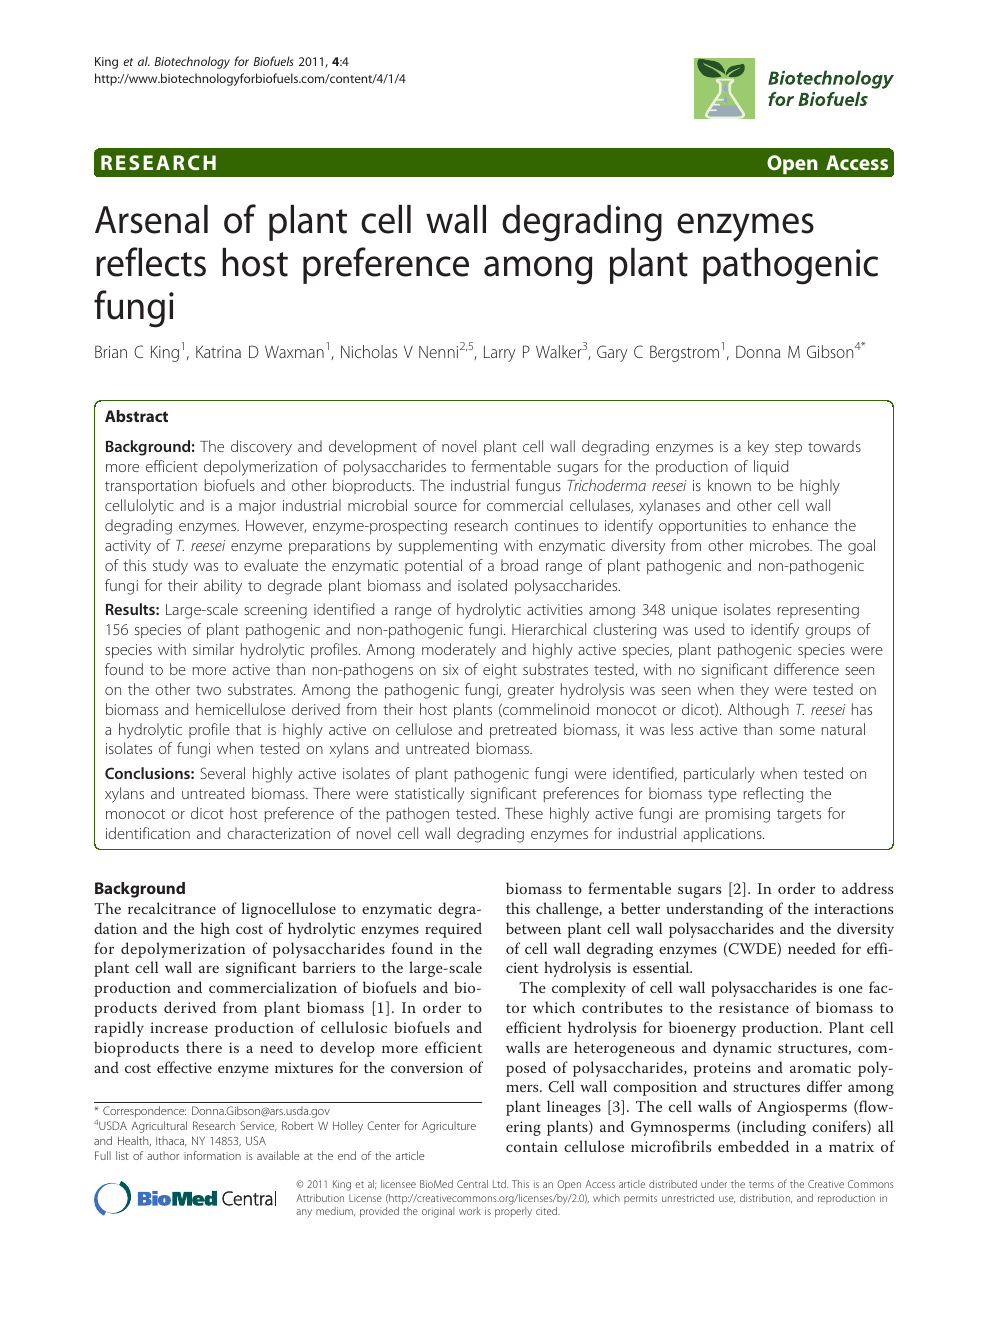 Arsenal of plant cell wall degrading enzymes reflects host